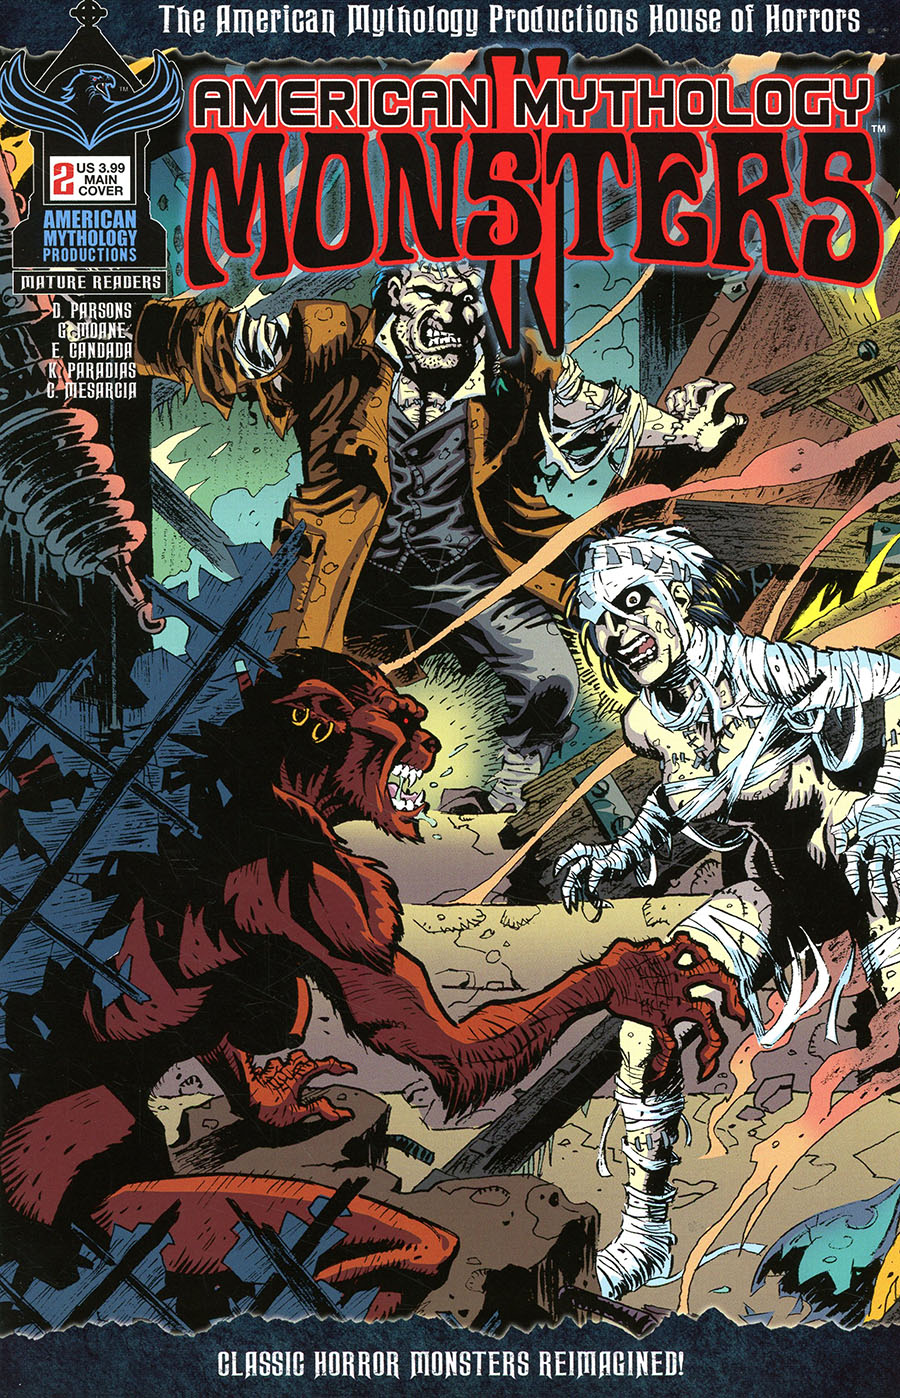 American Mythology Monsters Vol 2 #2 Cover A Regular Neil Vokes Cover